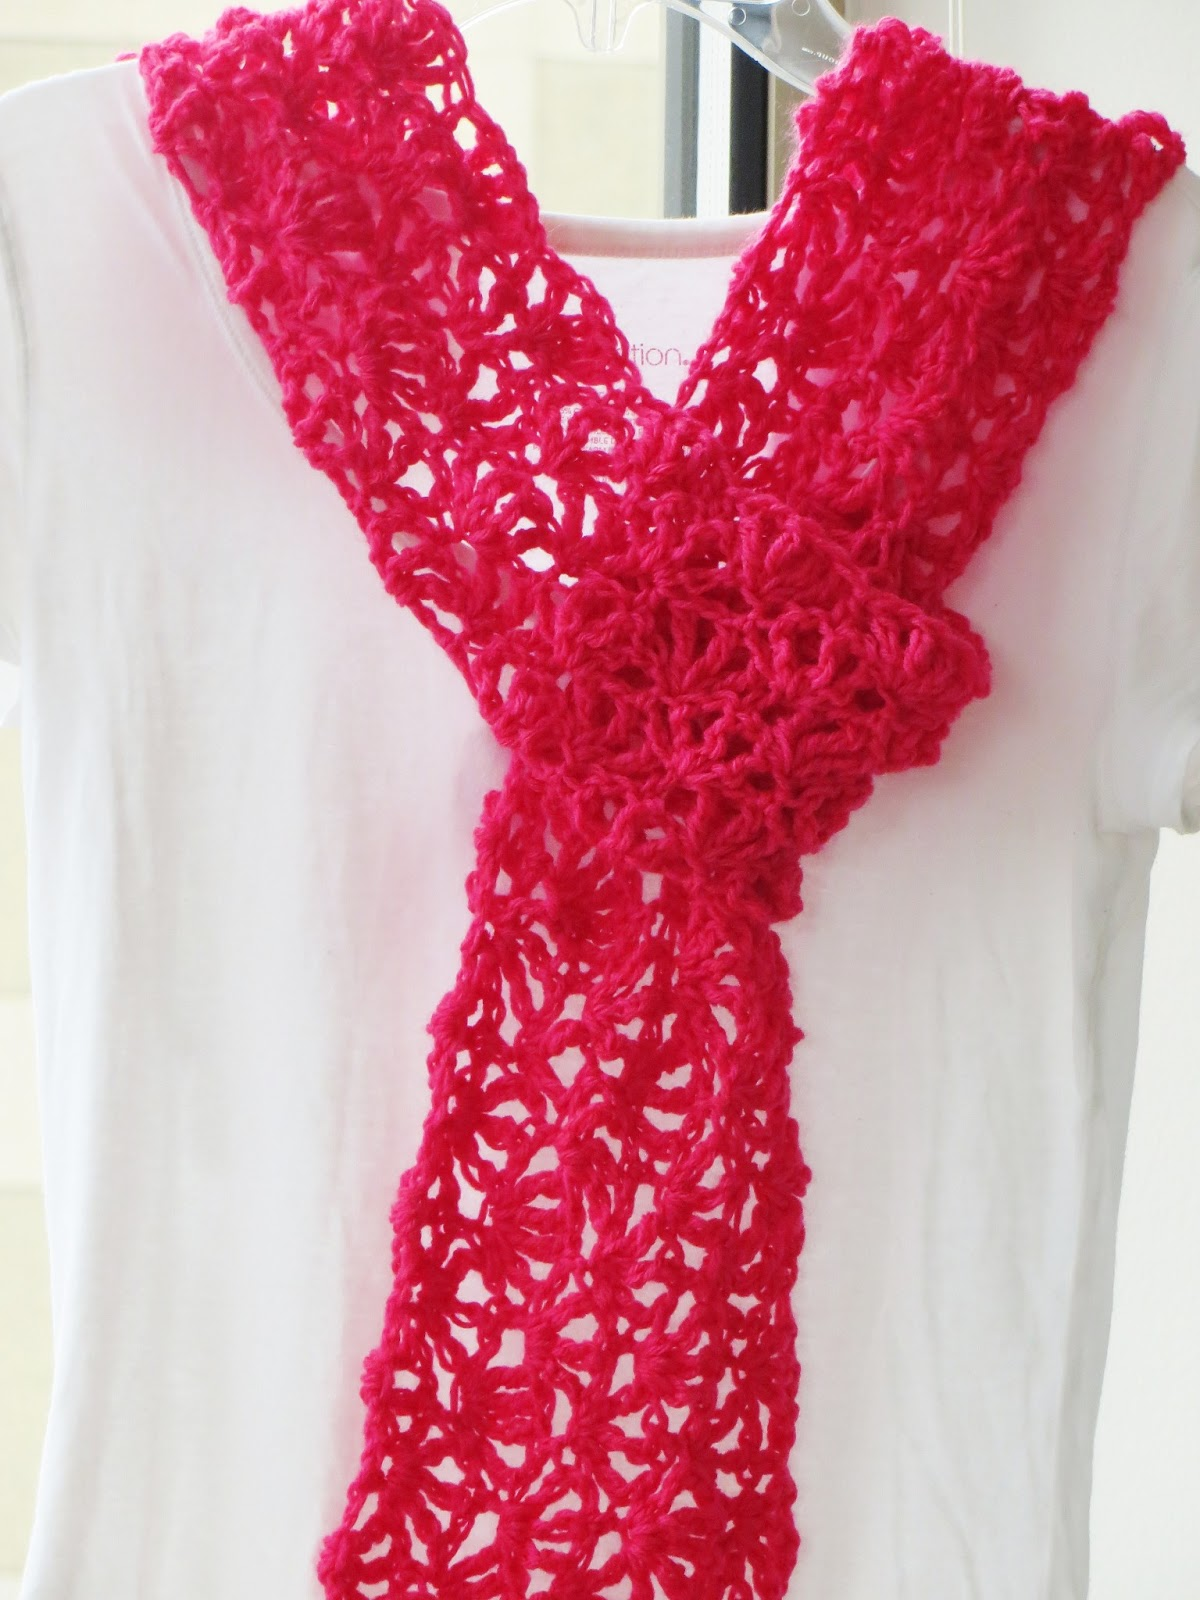 Crochet Scarf Pattern With Pictures : Crochet Dreamz: Alana Lacy Scarf, Free Crochet Pattern